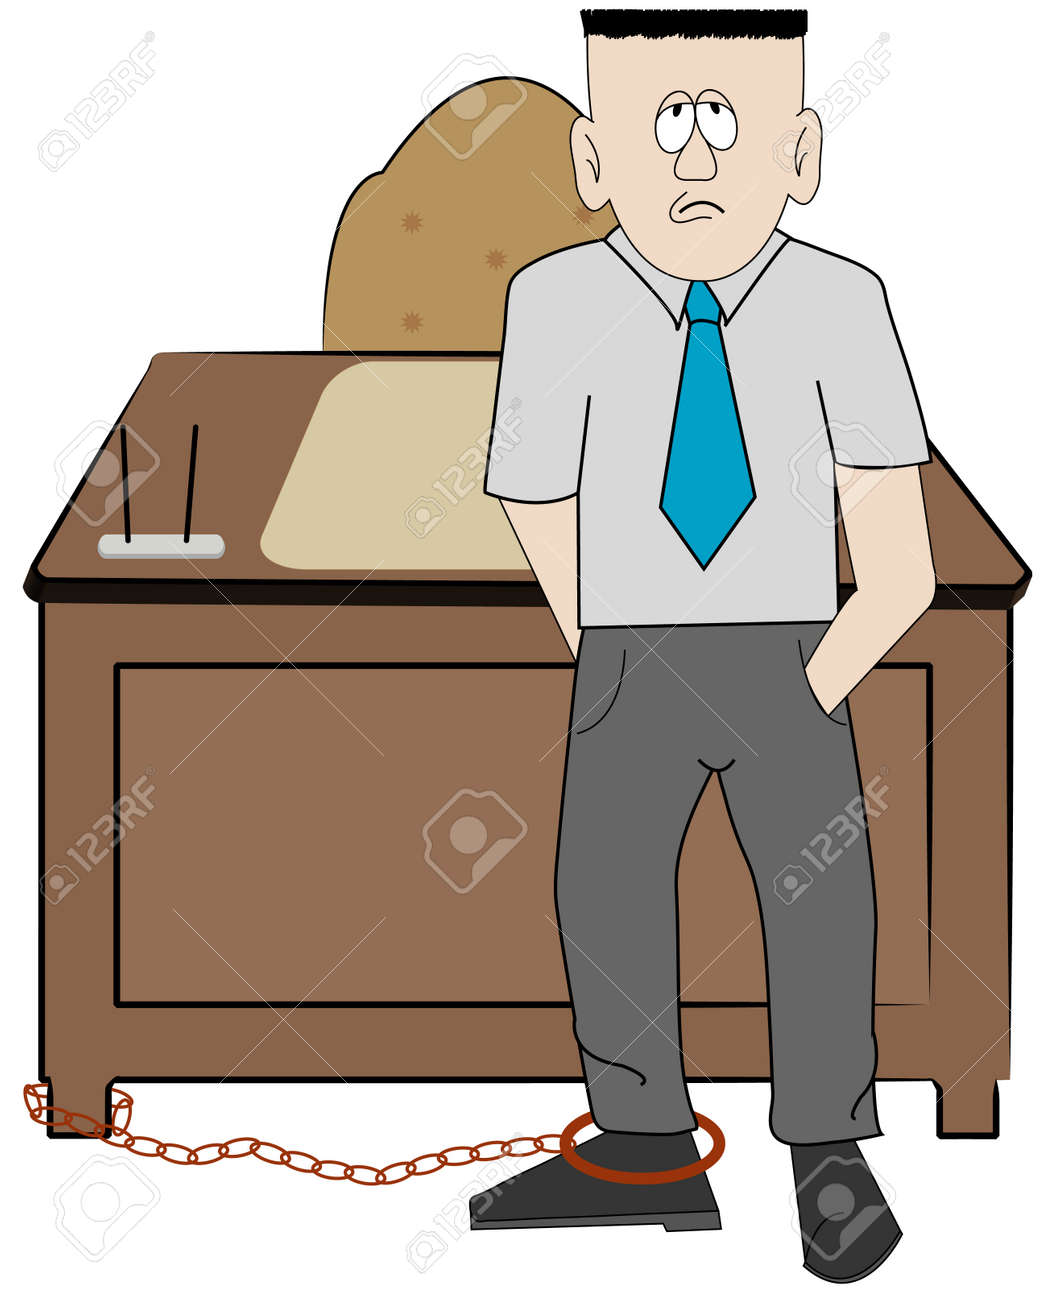 Image result for image of person chained to a desk